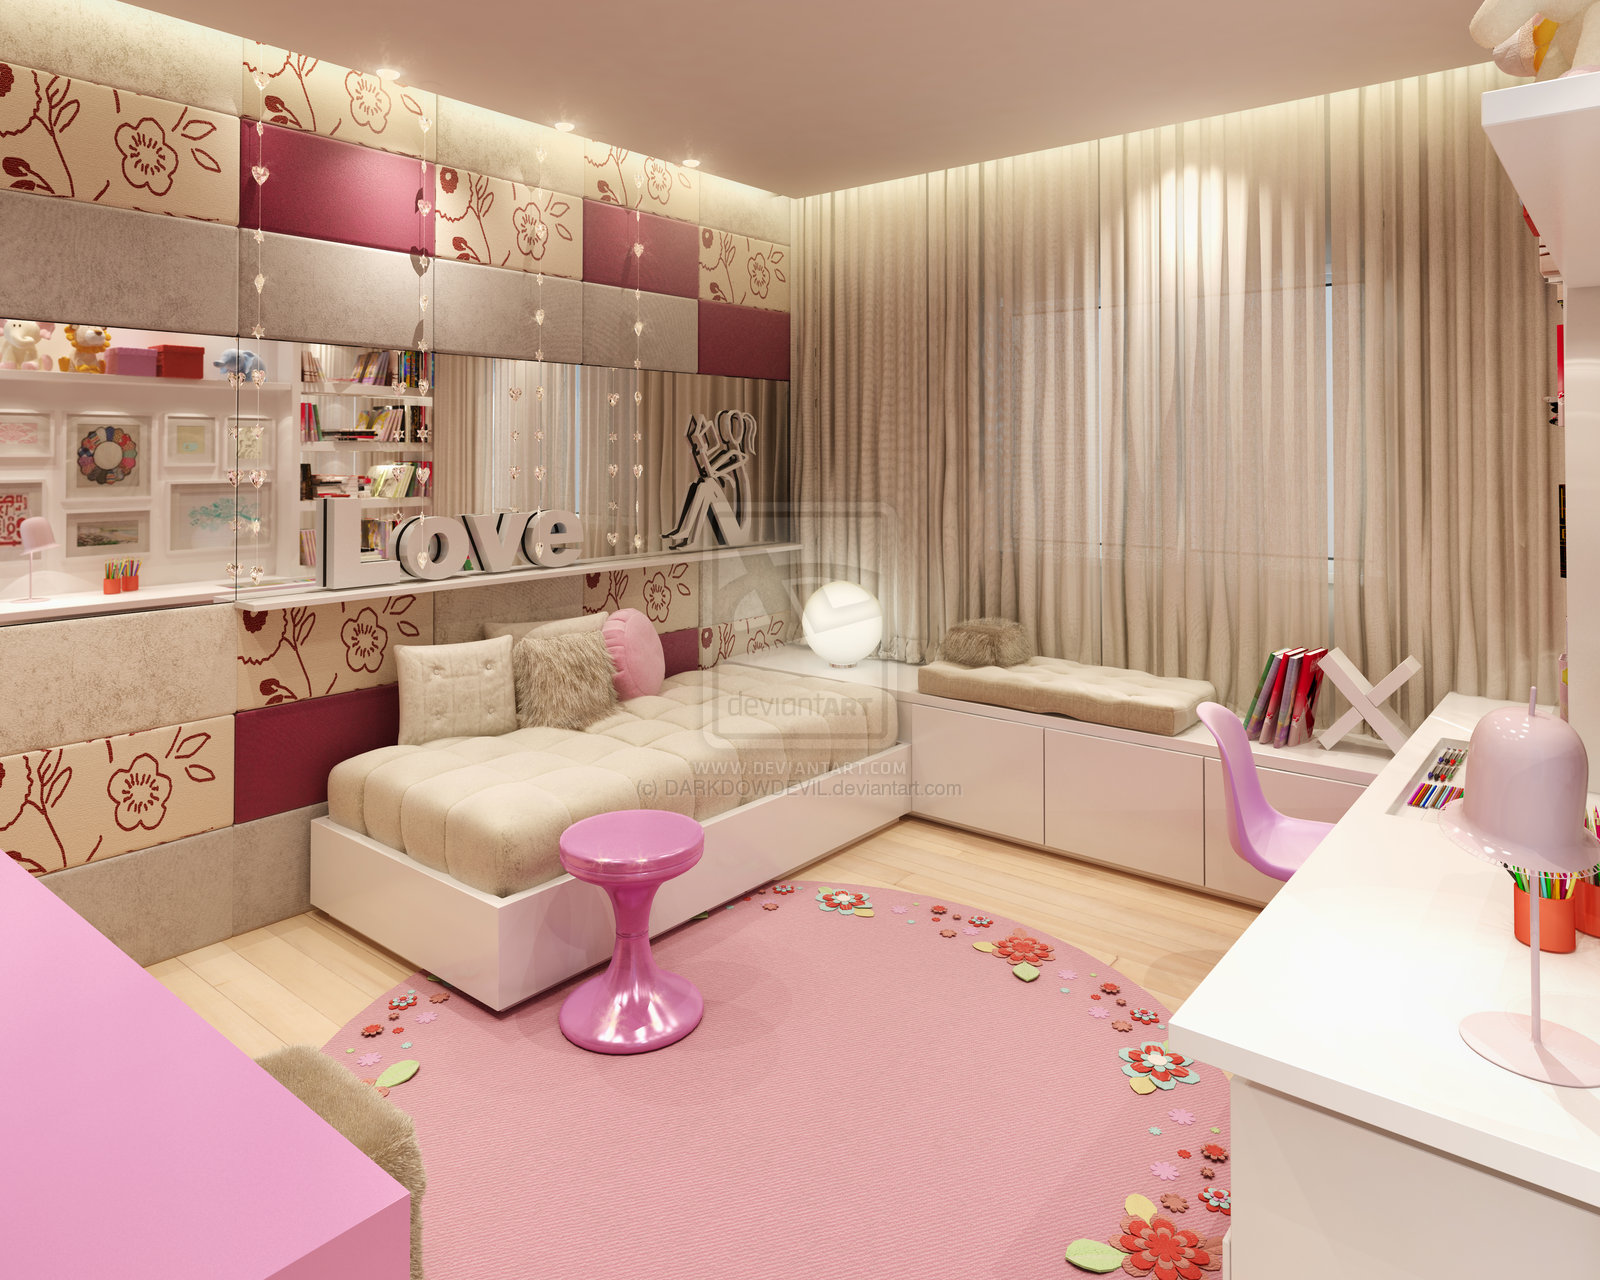 Girly bedroom design ideas azee - Girl bed room ...